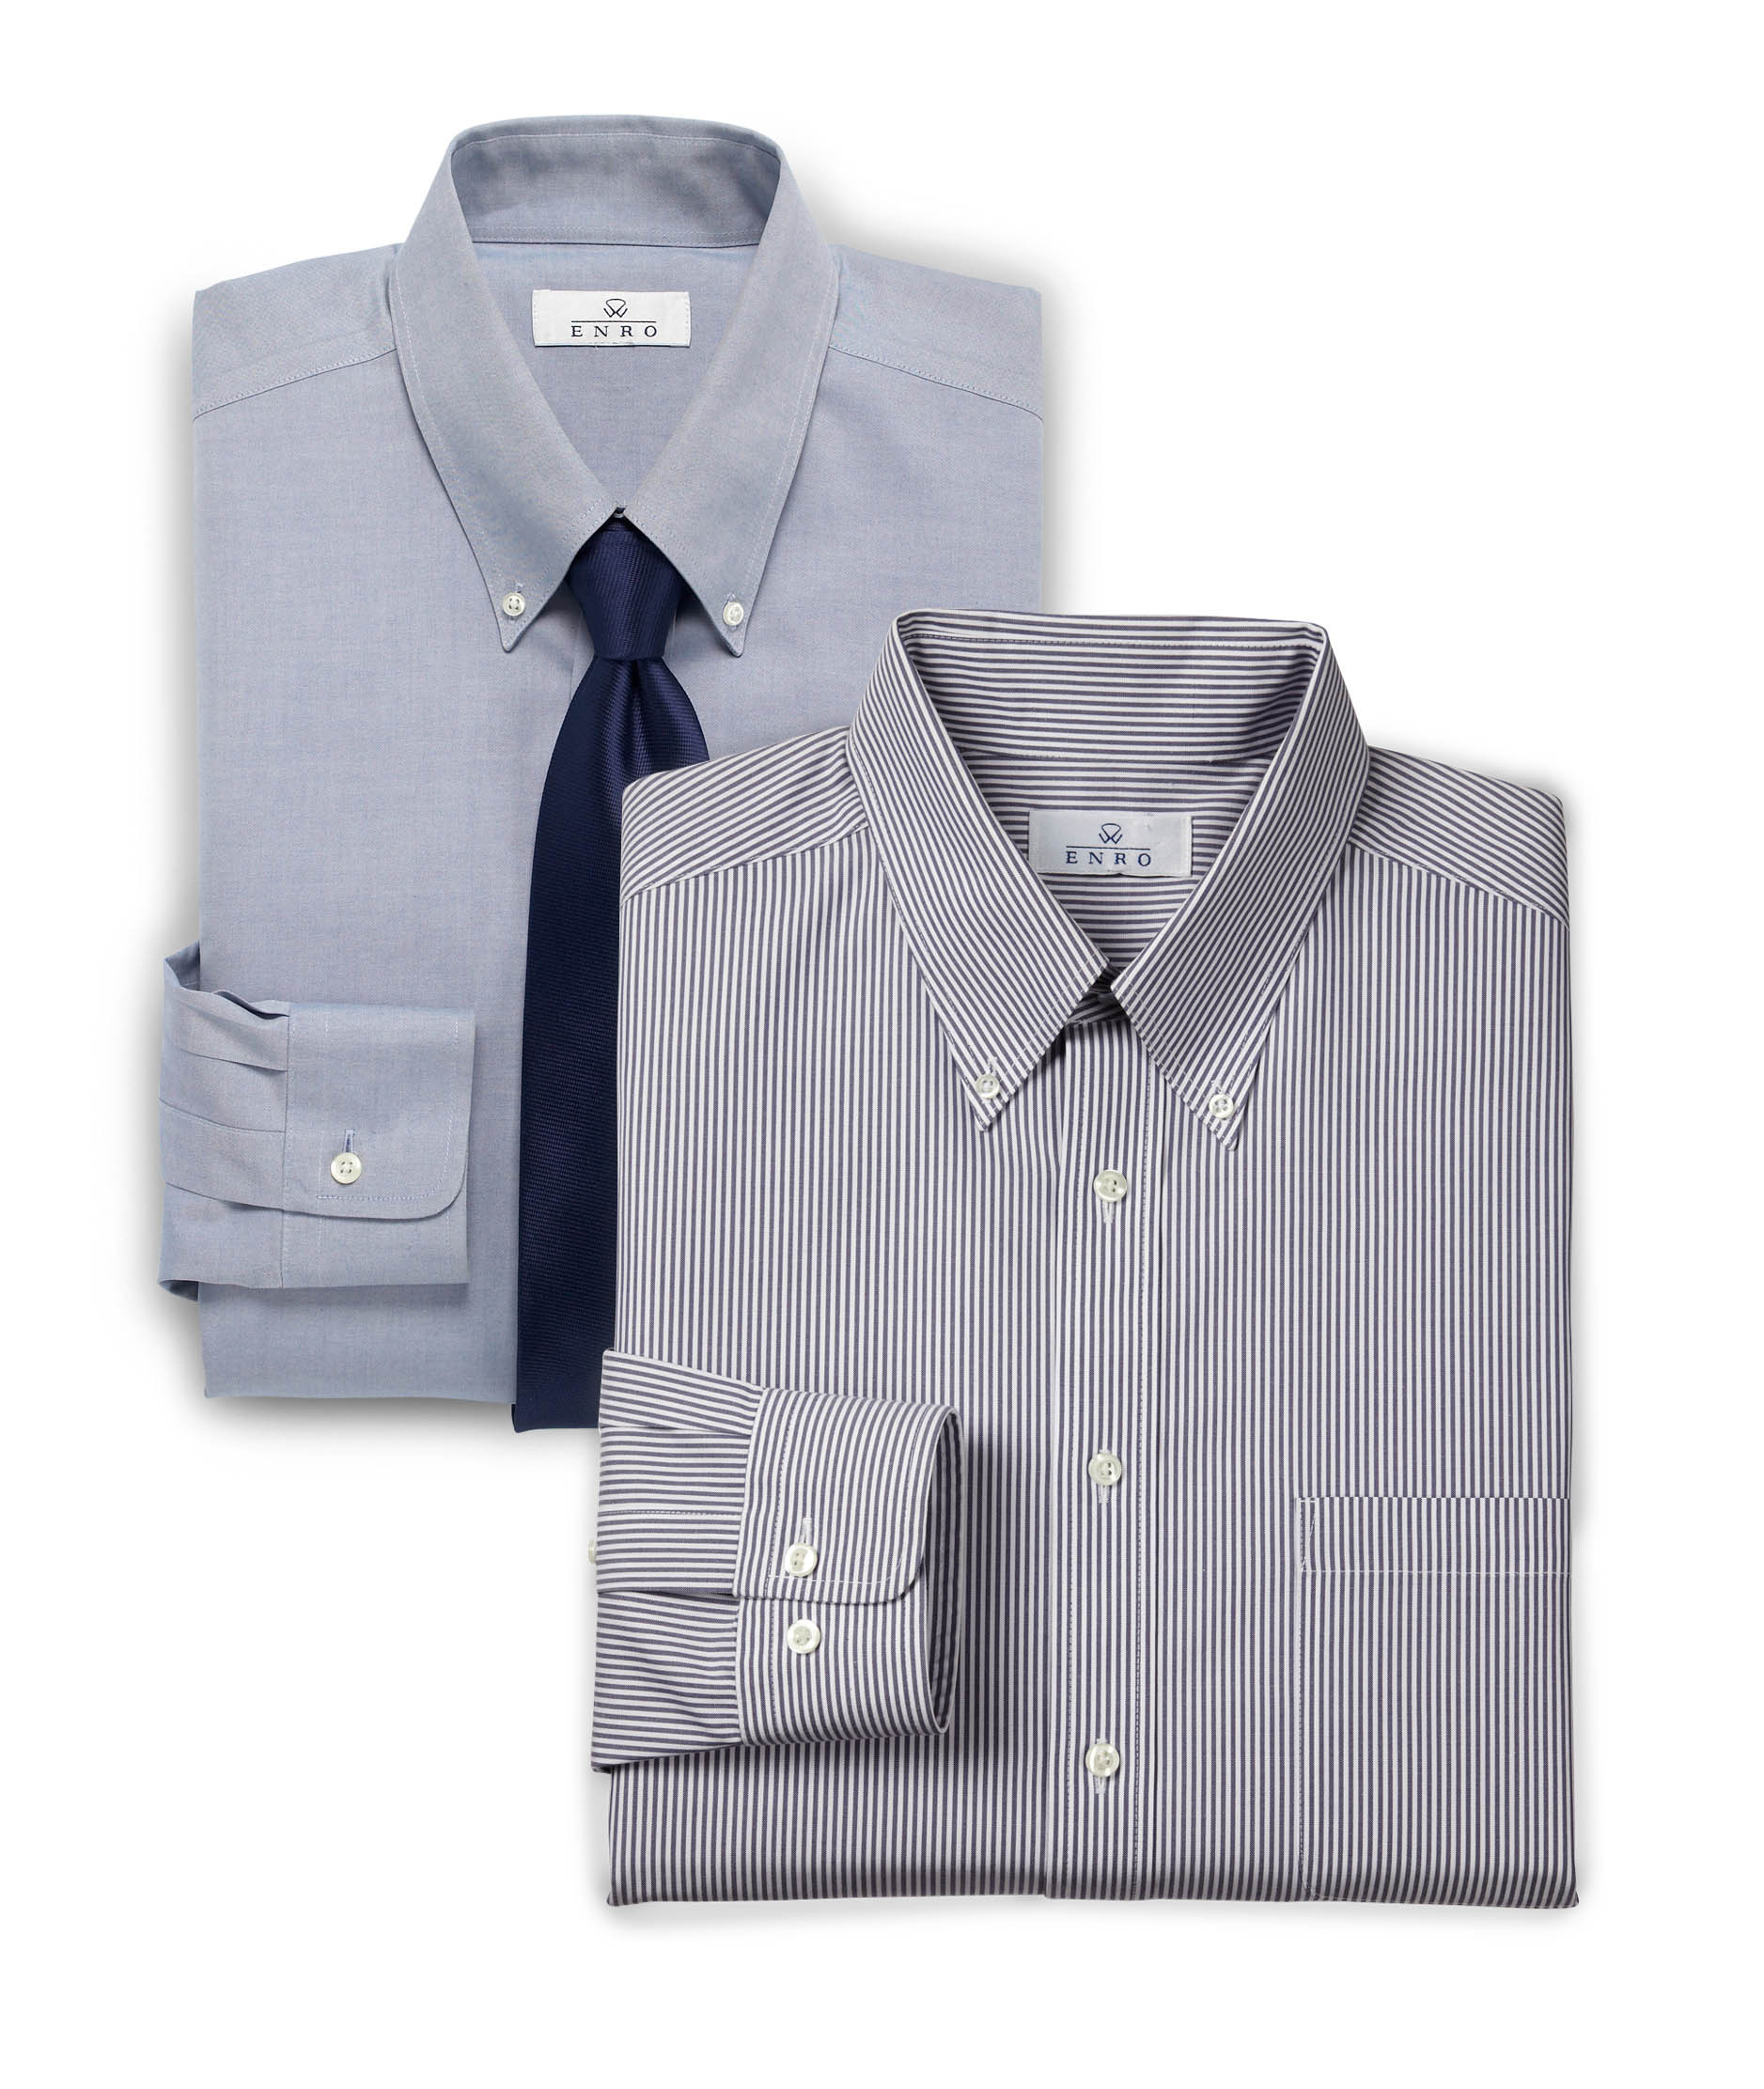 MIX & MATCH ENRO $80 LONG-SLEEVE DRESS SHIRTS